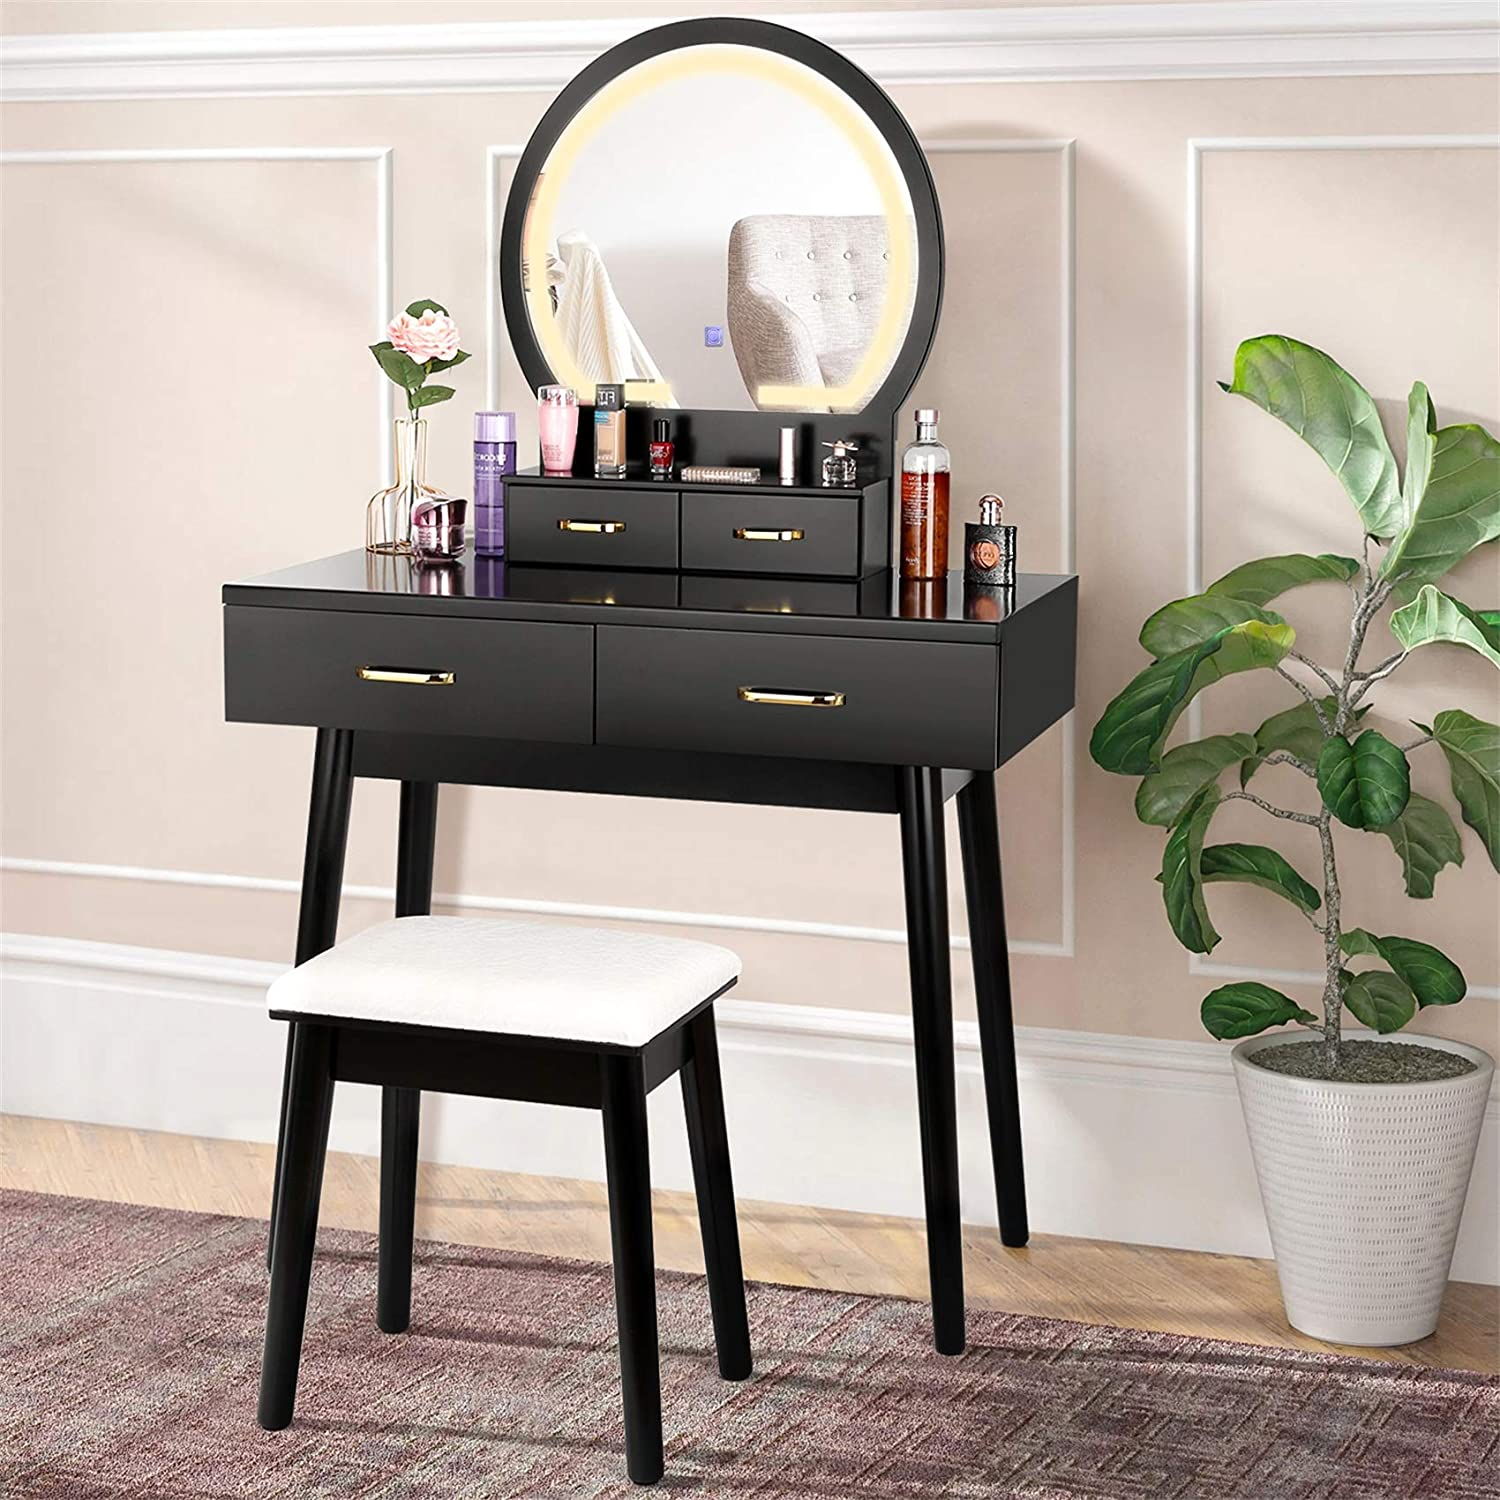 amzdeal Vanity Set with Lighted Mirror, Makeup Vanity Dressing Table with Touch Screen Dimming Mirror, 3 Color Lighting Modes 4 Drawers Dresser Desk and Cushioned Stool Set - Black